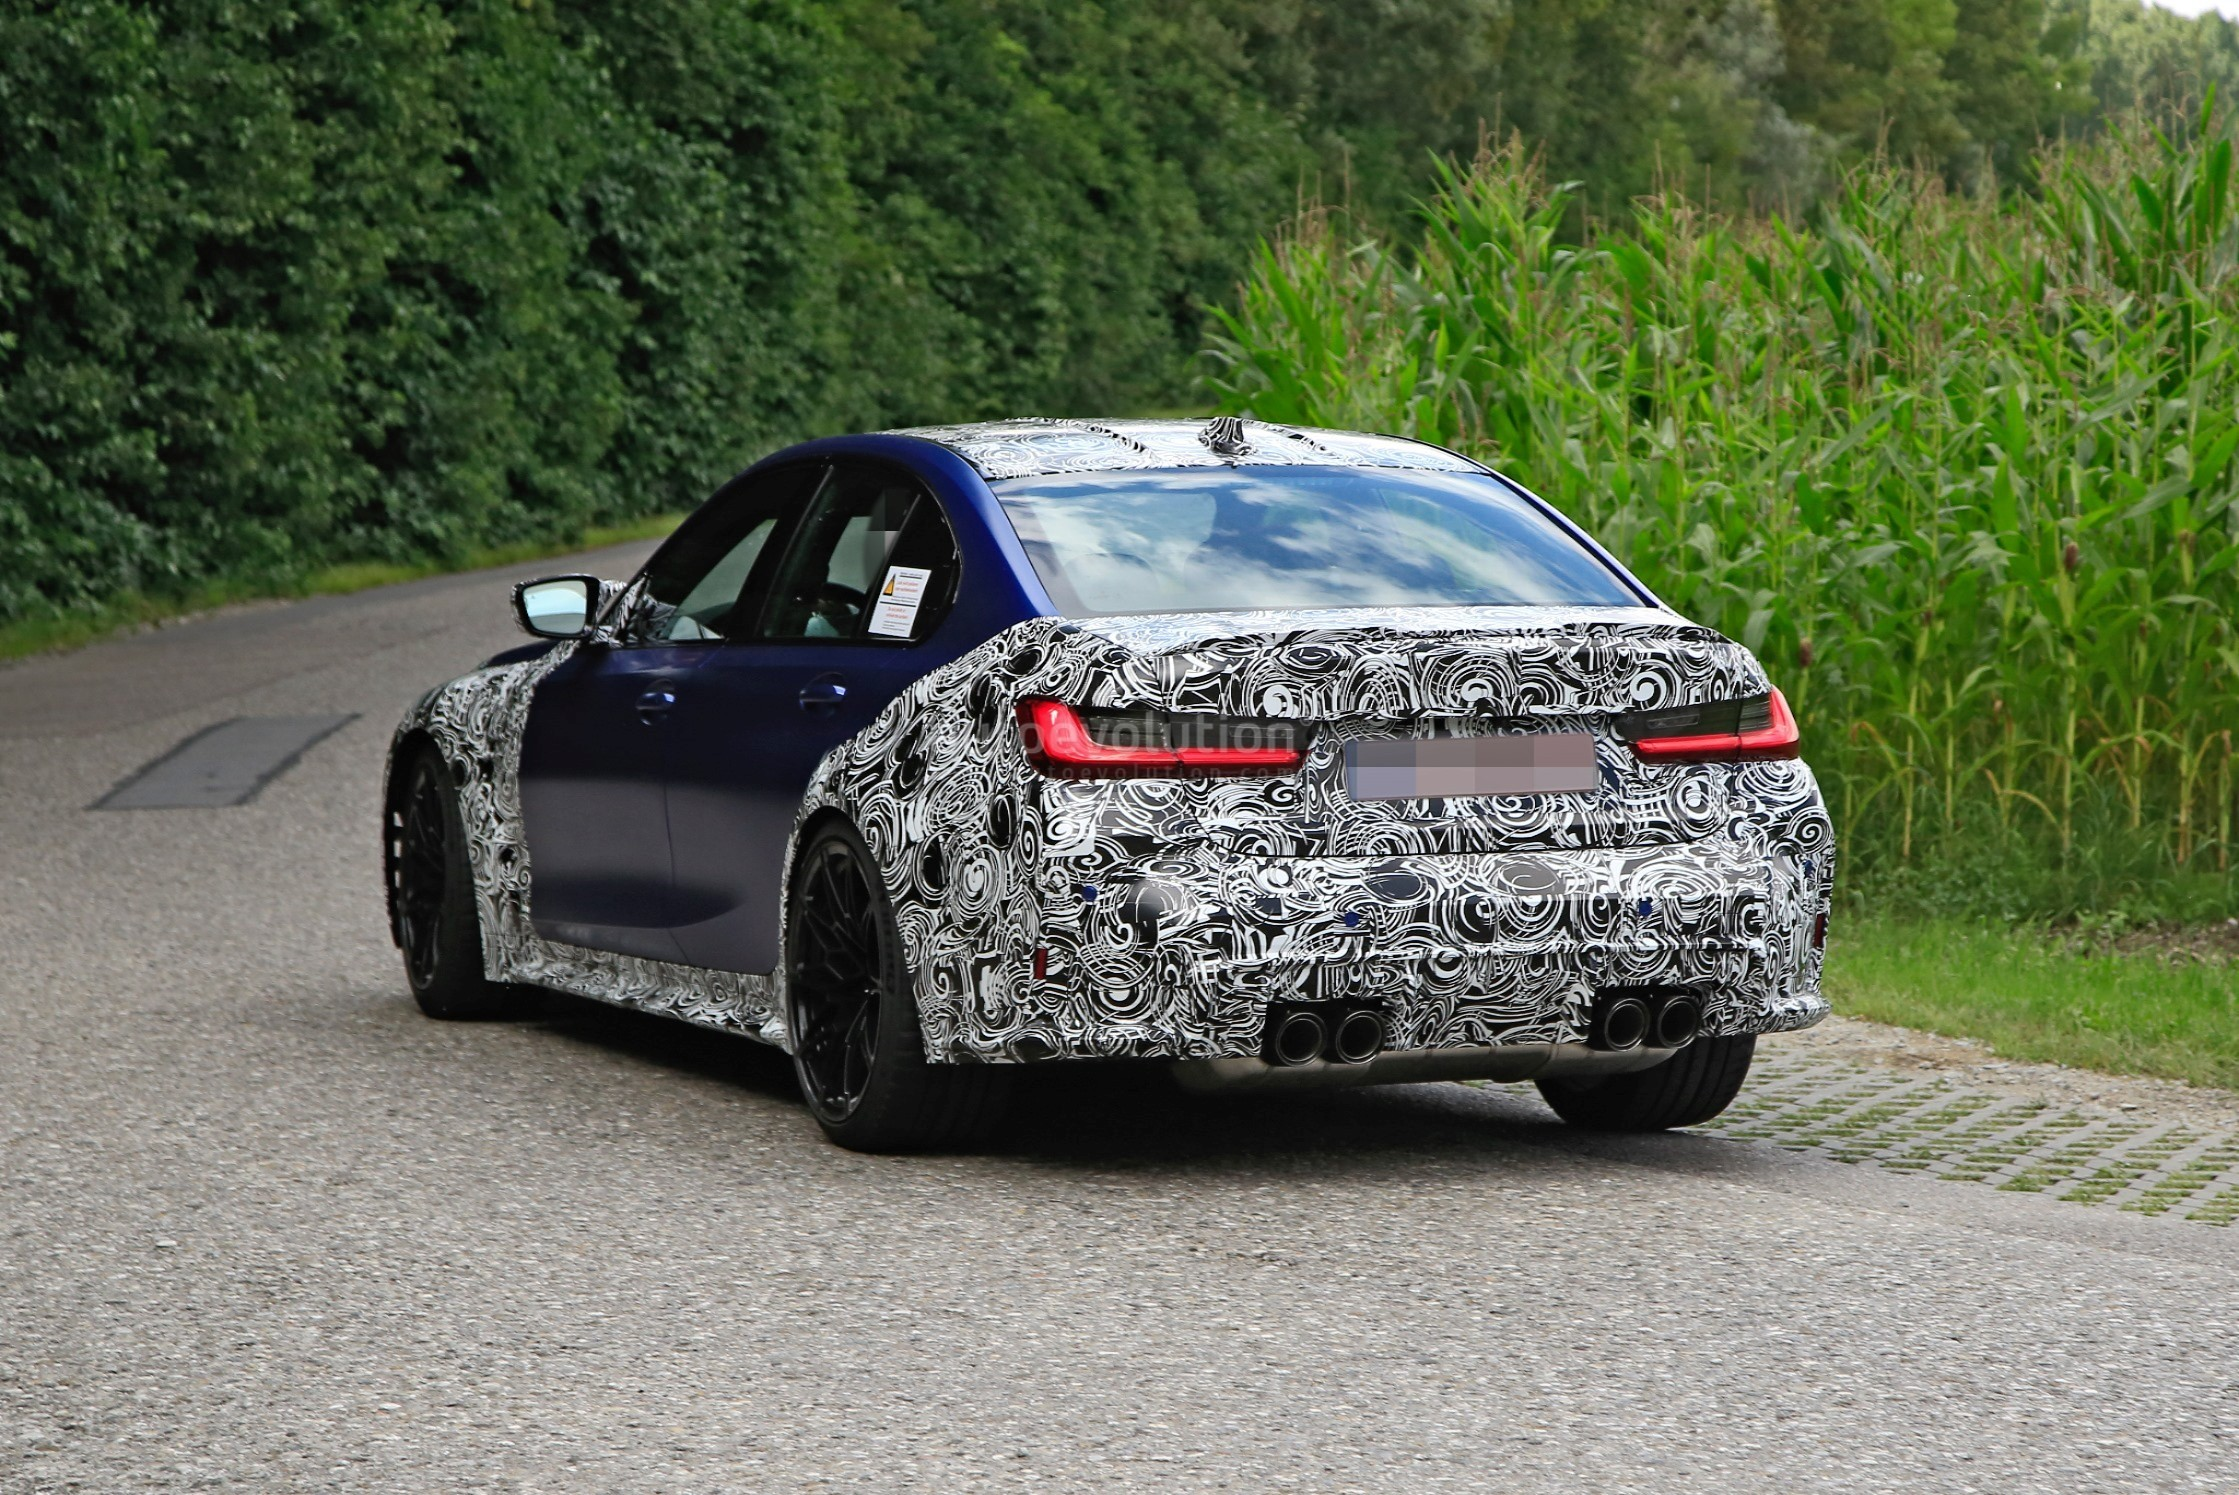 g80-bmw-m3-shows-ginormous-kidney-grille-in-new-spy-phots_8